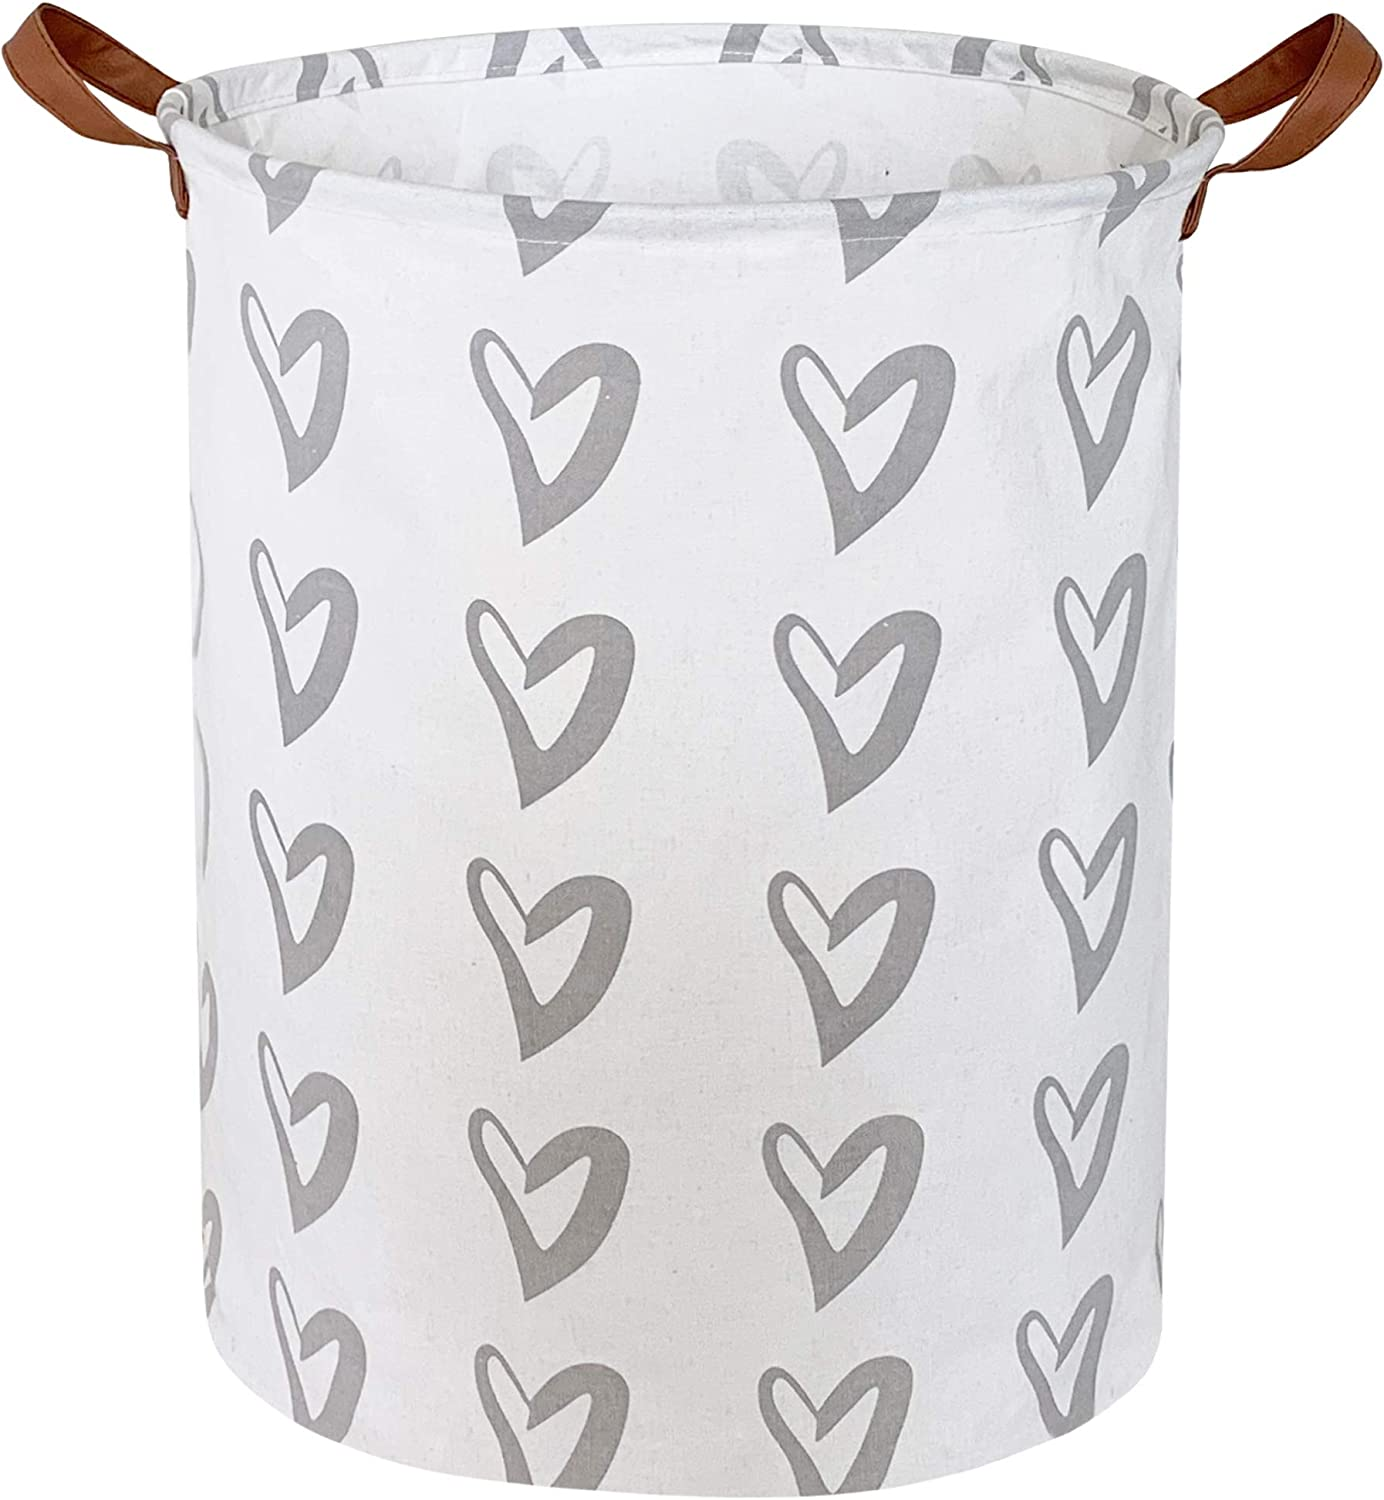 CLOCOR Laundry Basket,Laundry Hamper,Collapsible Storage Bin,Canvas Fabric Clothes Baskets,Nursery Hamper for Home,Office,Dorm,Gift Basket (Grey Heart)